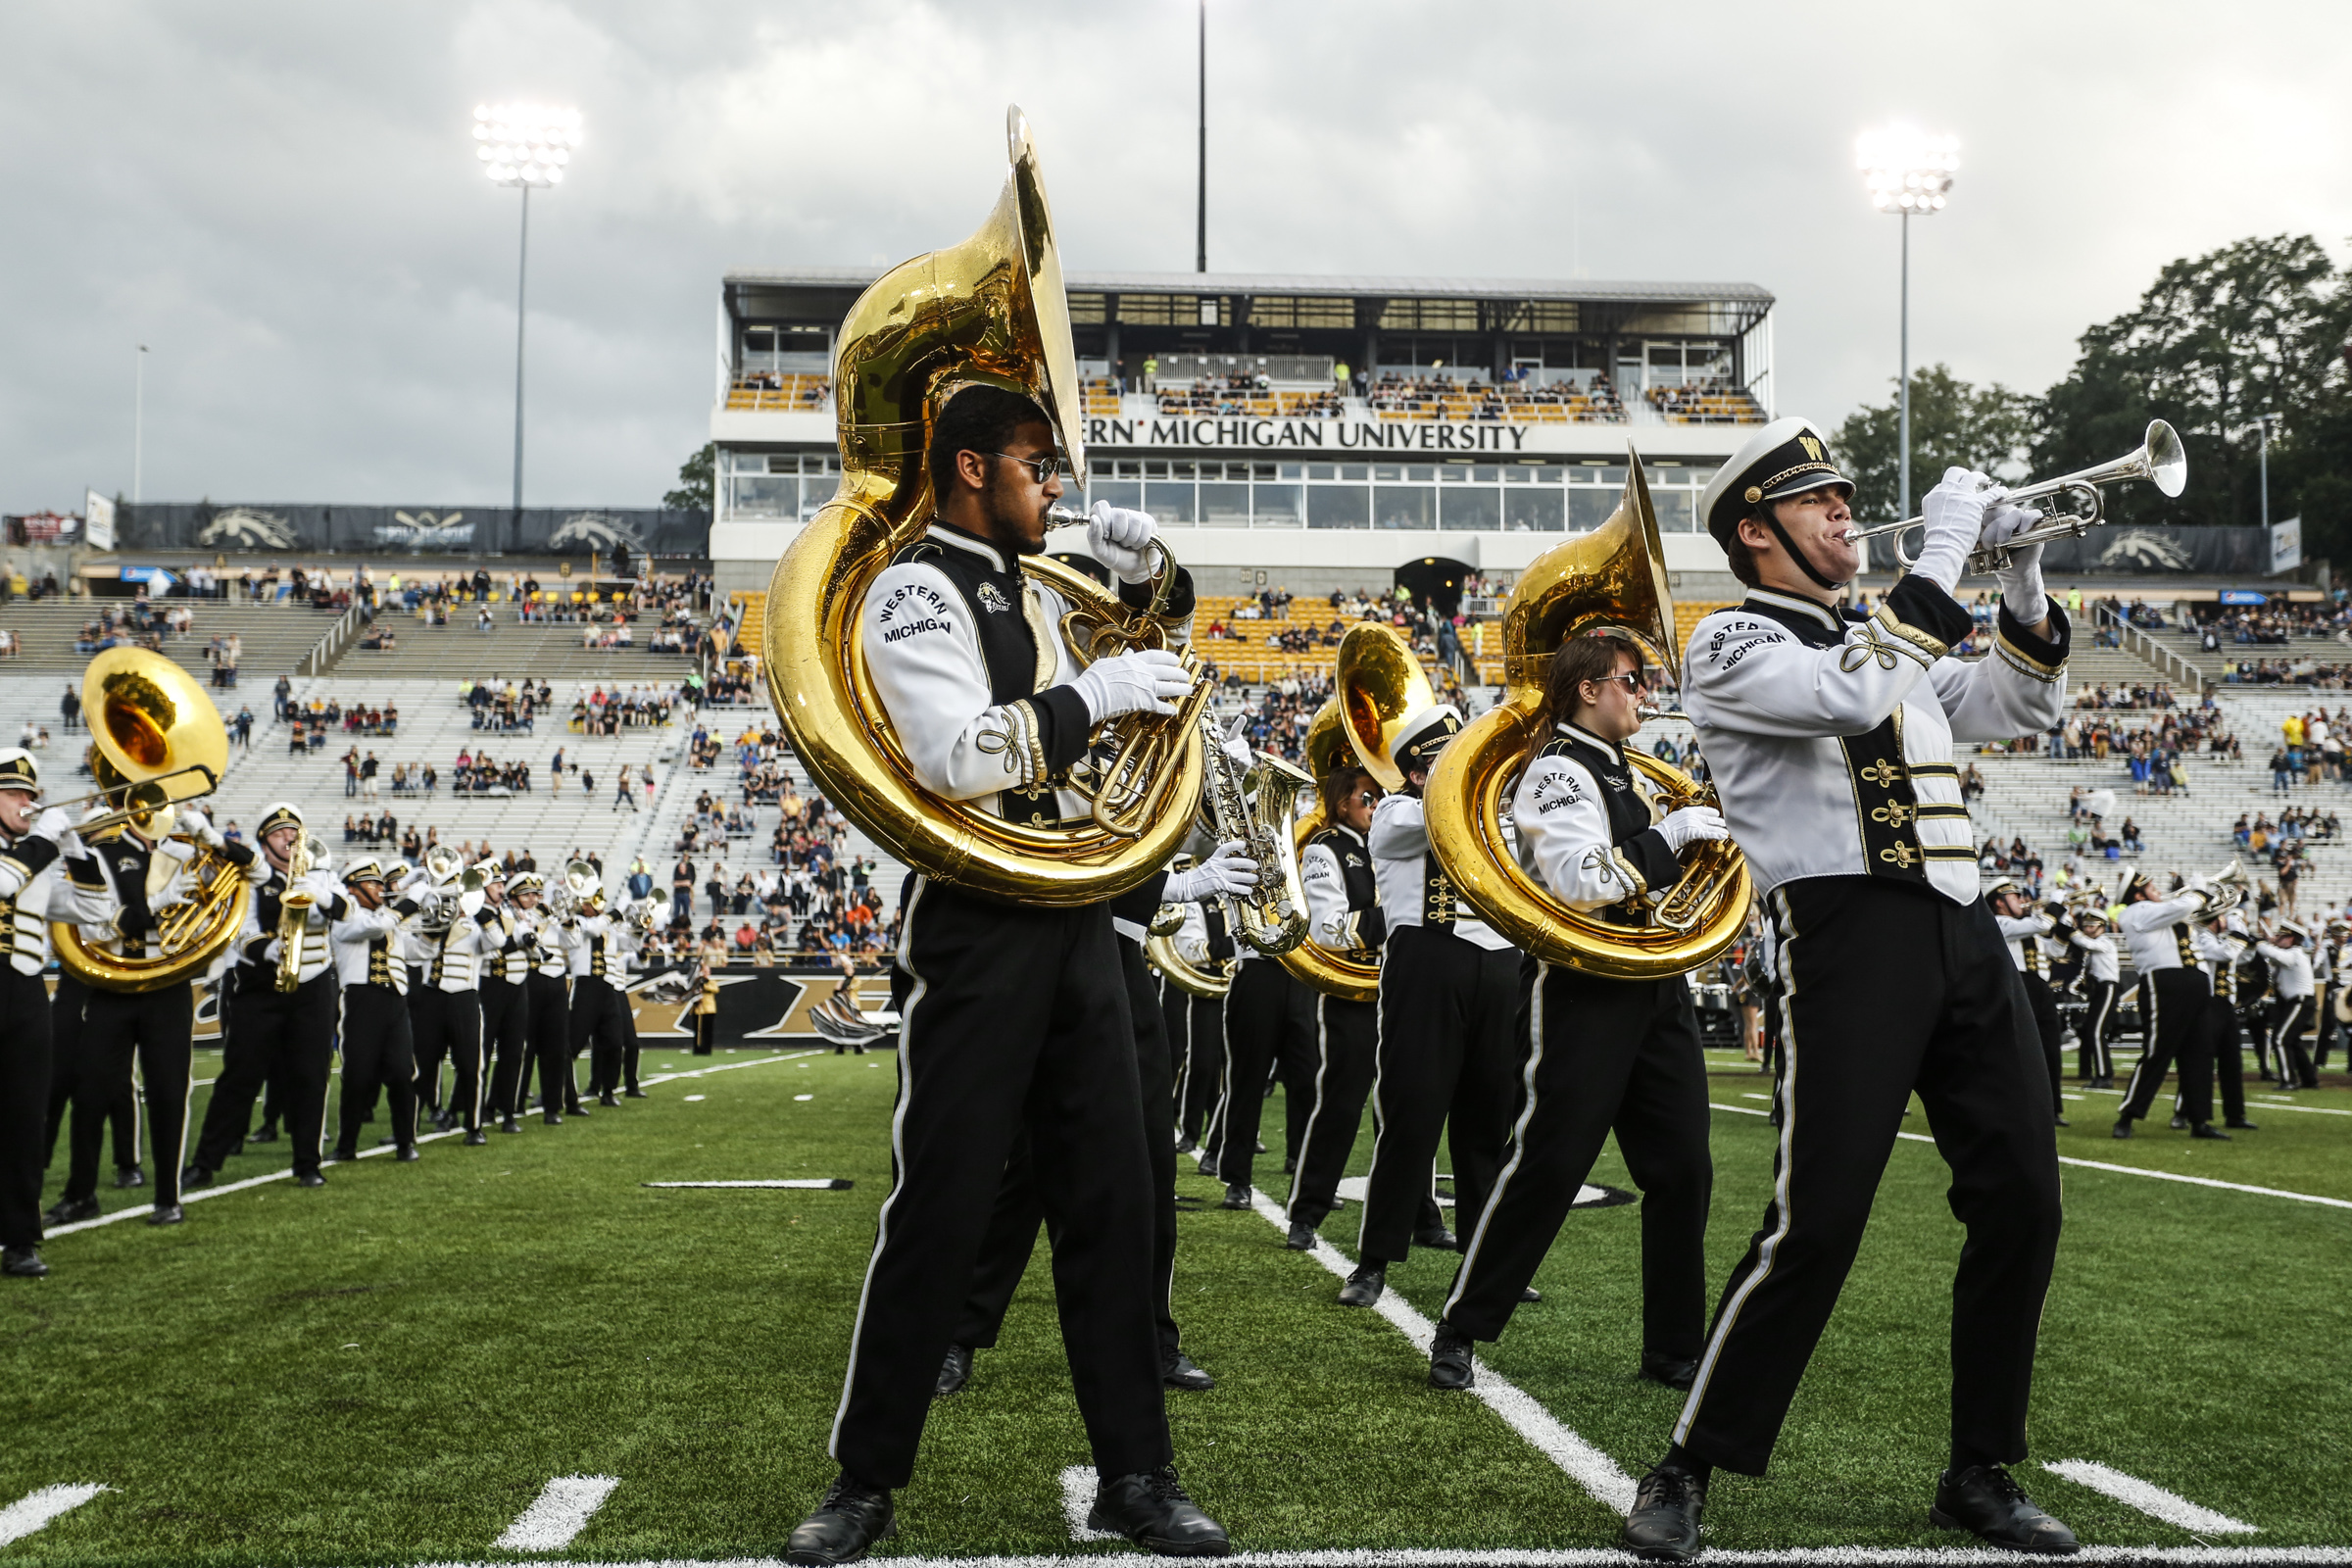 FILE -- In this Sept. 20, 2014, file photo, the Western Michigan marching band performs before an NCAA college football game in Kalamazoo, Mich. Marching bands and cheerleading squads are so much a part of college football's pageantry that many bowls stro